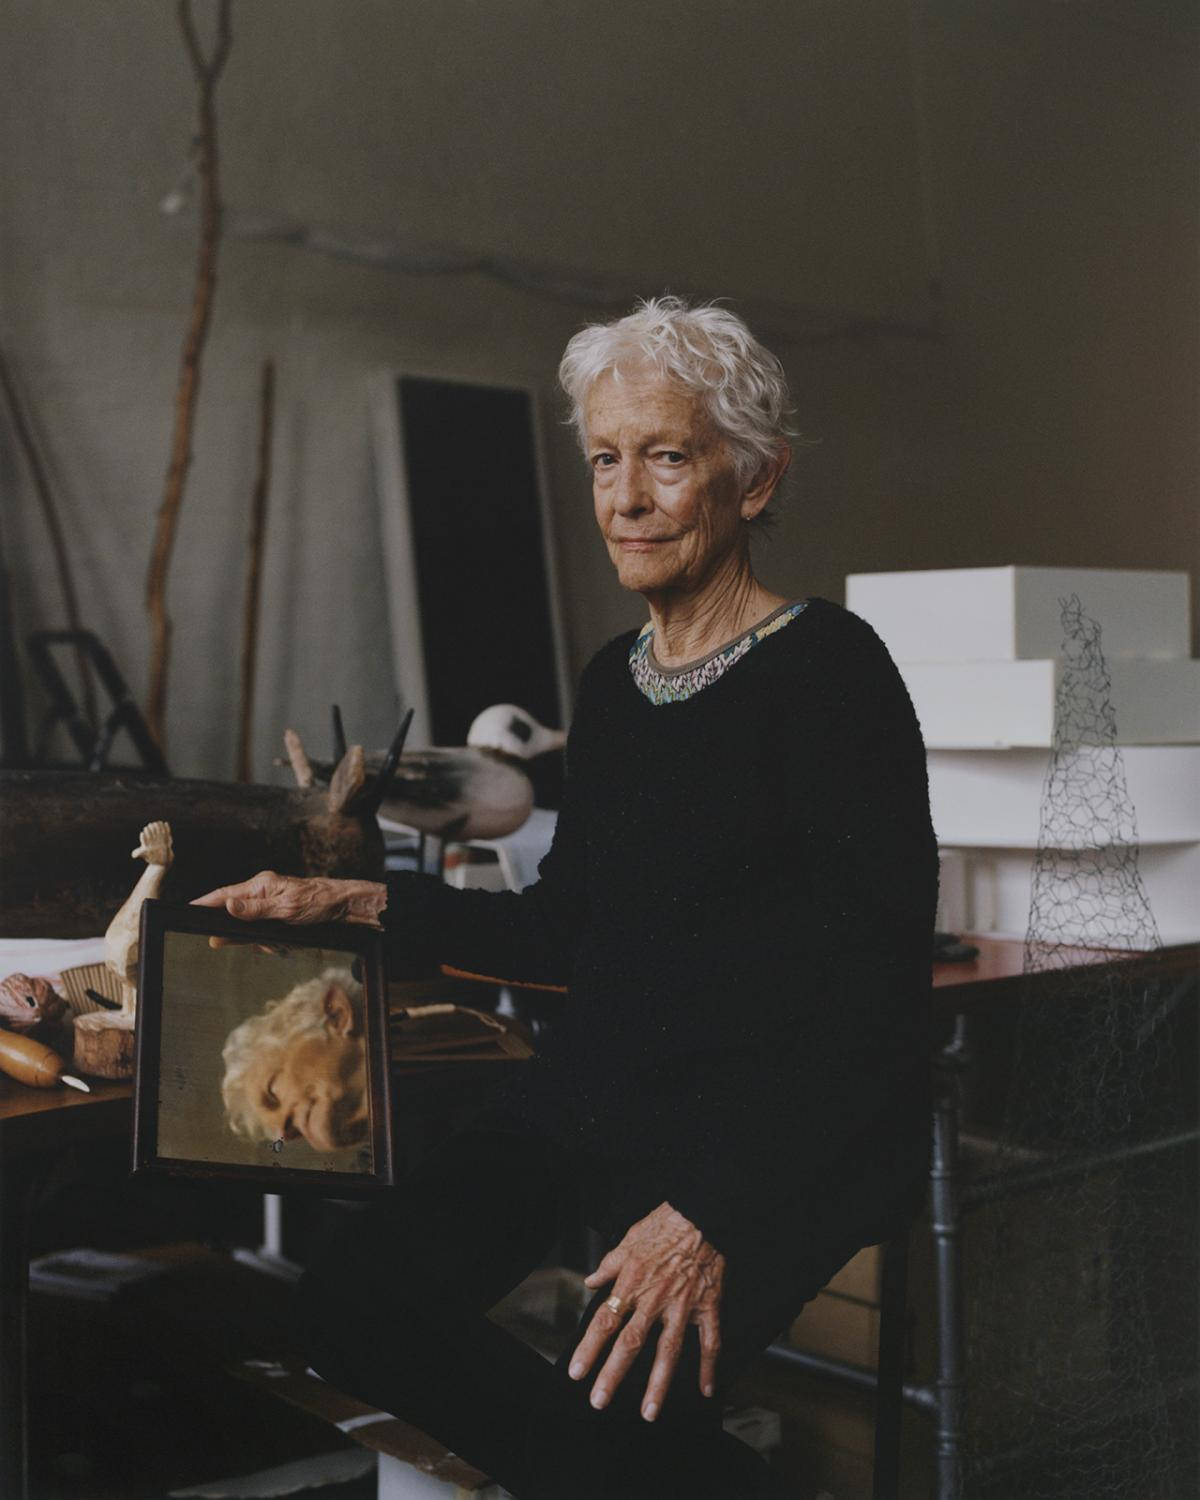 A photograph of a woman in a studio